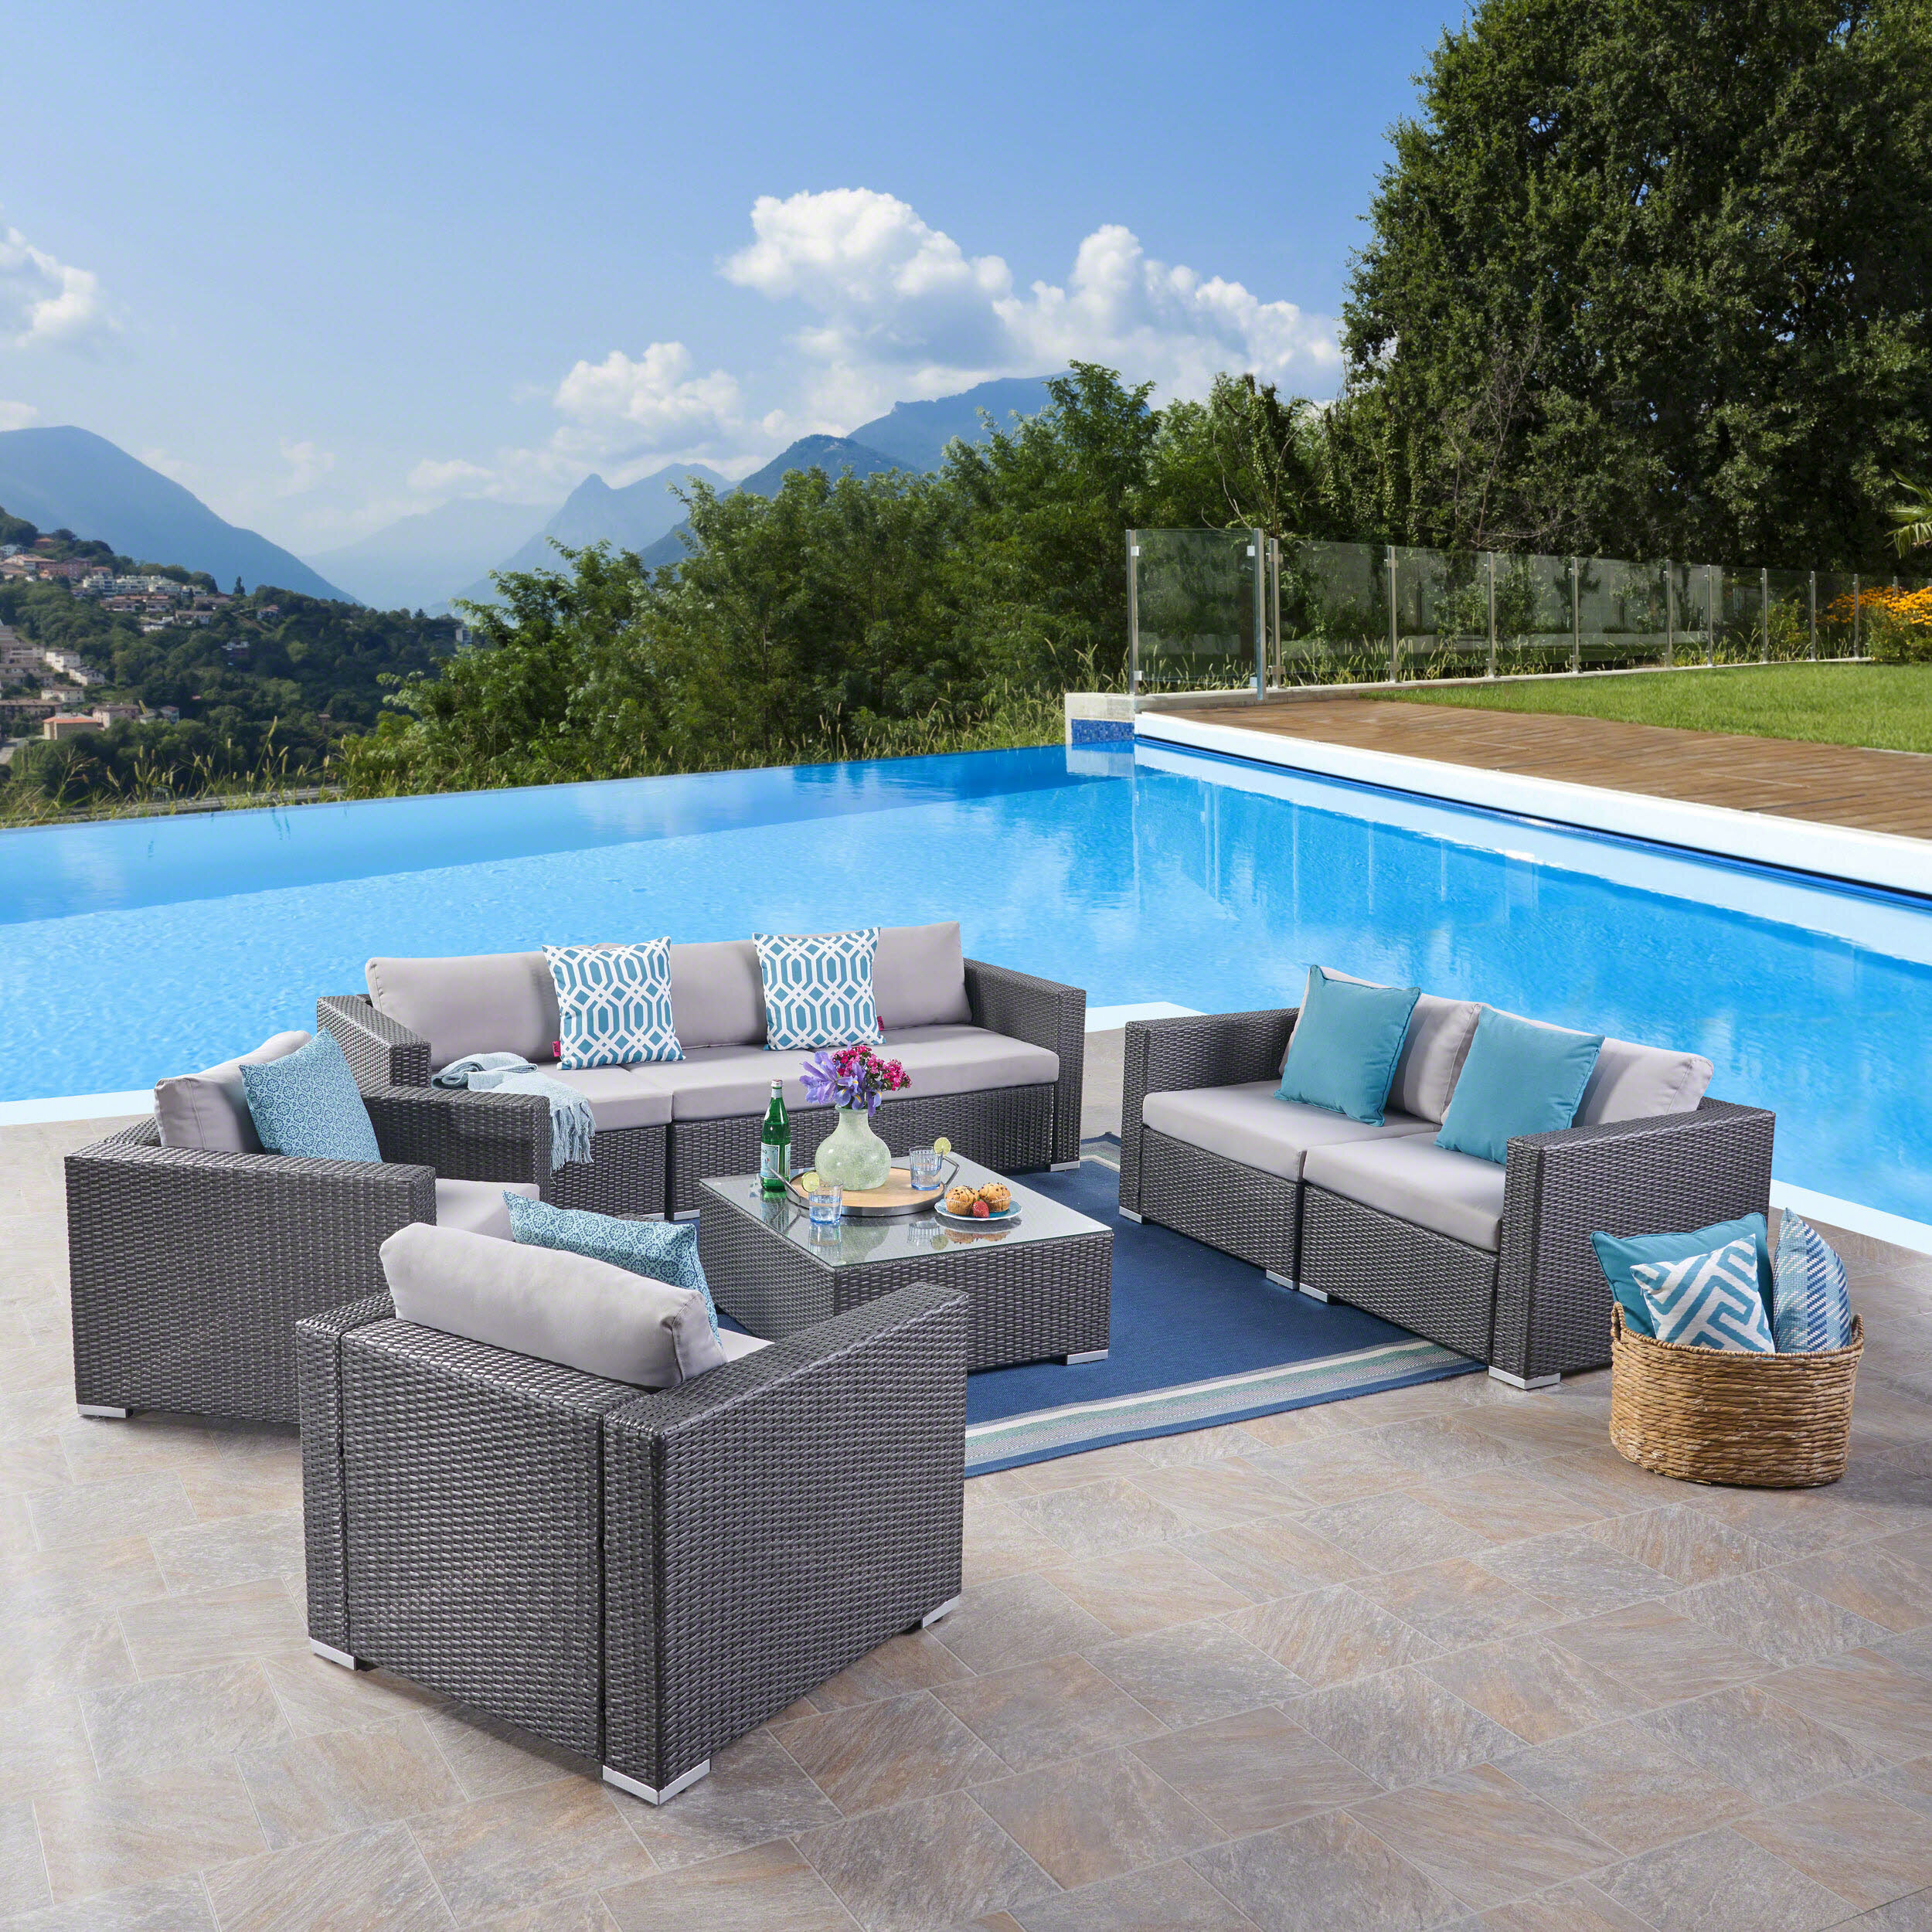 Lounge Deep Seating Silver Patio Conversation Sets You Ll Love In 2021 Wayfair